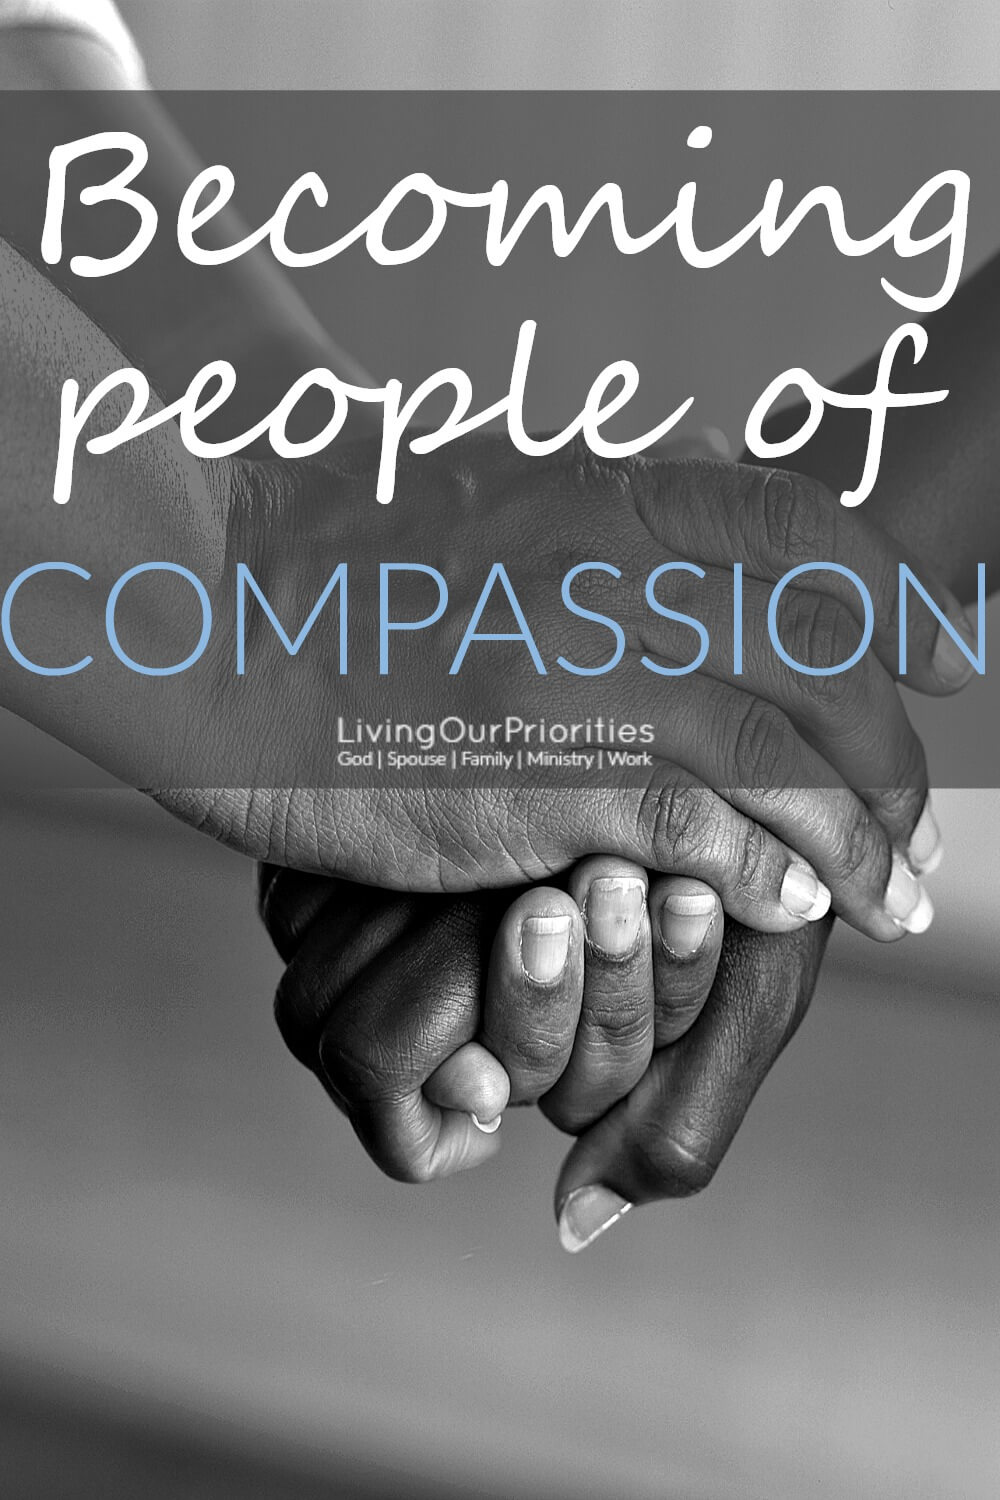 Many of us like to think we are compassionate, but are we perceived as being compassionate? What would our world if were all people of compassion?